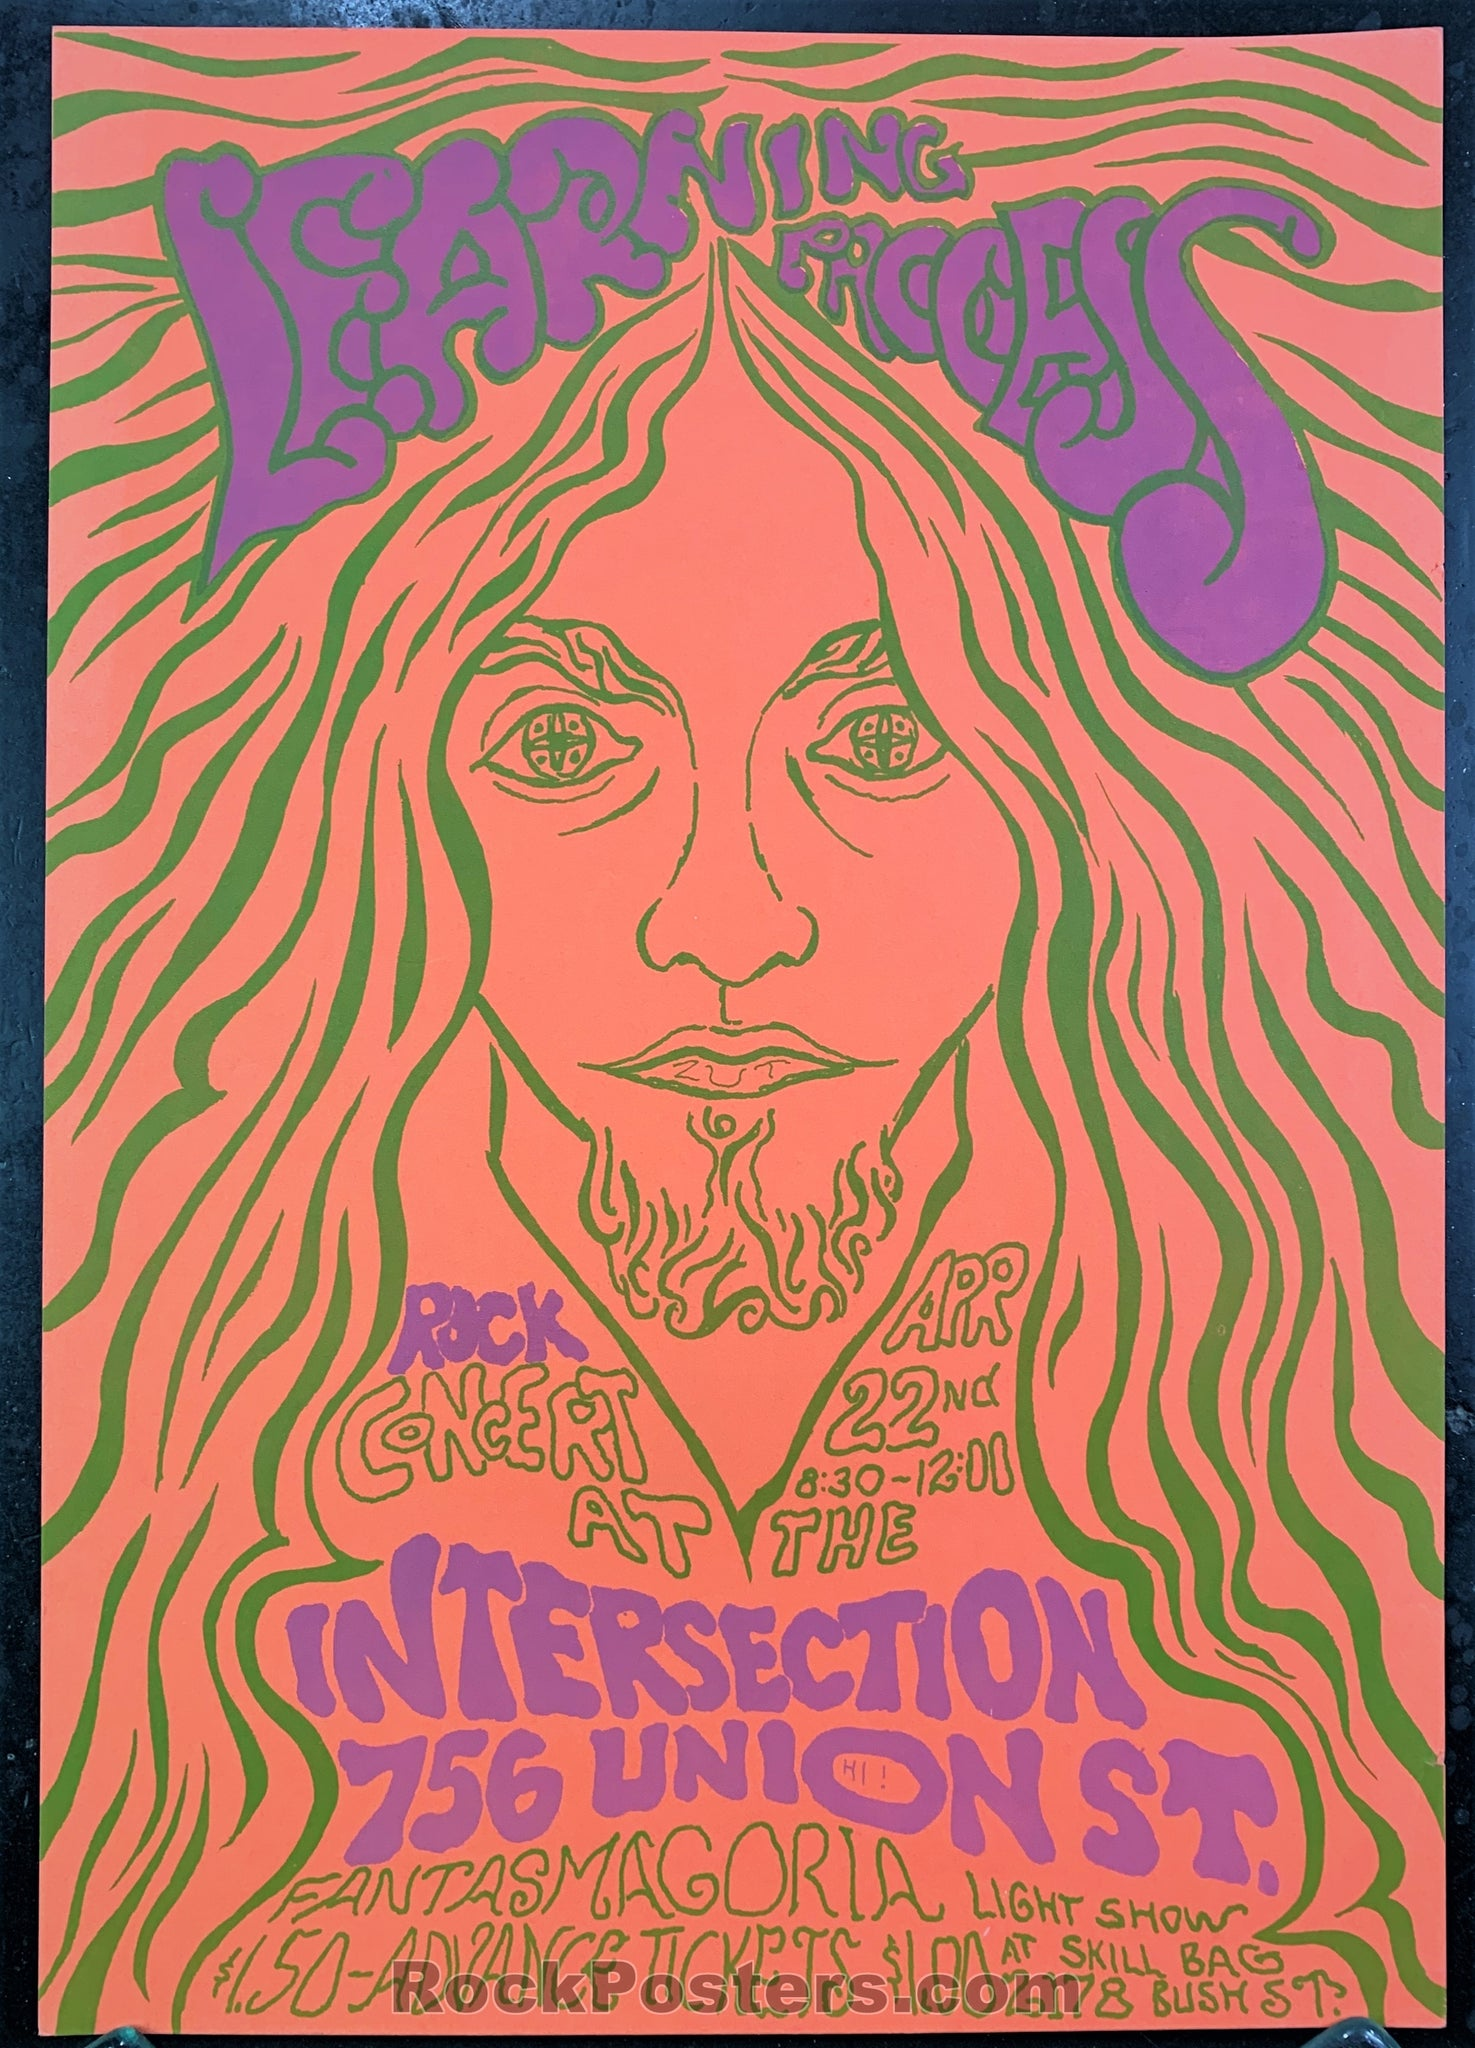 AUCTION - Psychedelic - San Francisco 60's Poster - The Intersection - Condition - Excellent